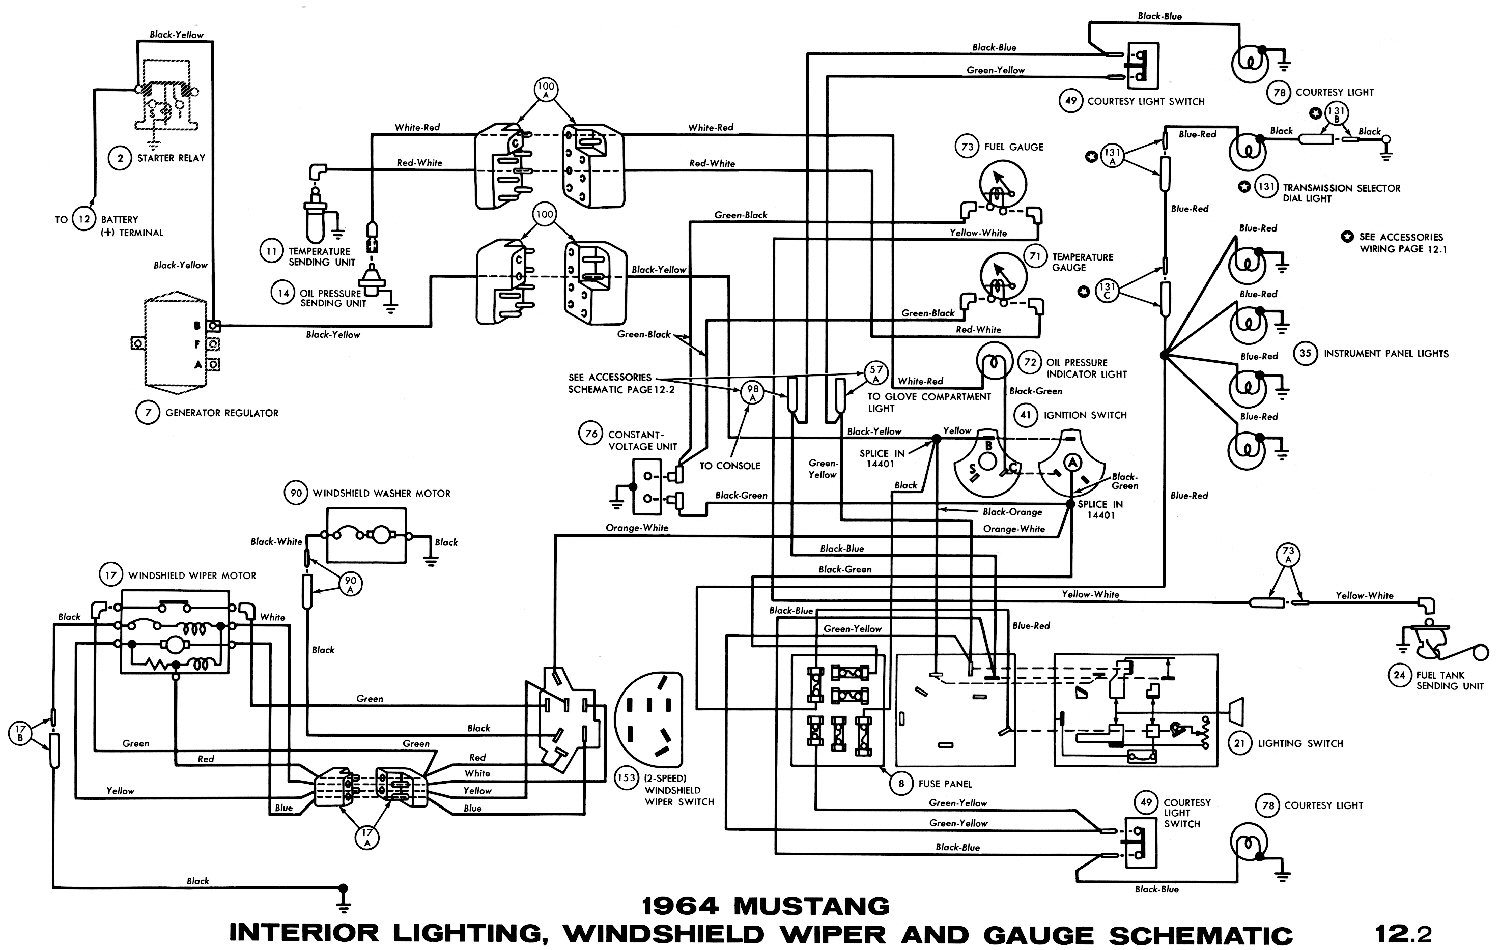 64 Ford Mustang Wiper Switch Wiring Diagram Data 2 Speed Electric Motor 1964 Diagrams Average Joe Restoration